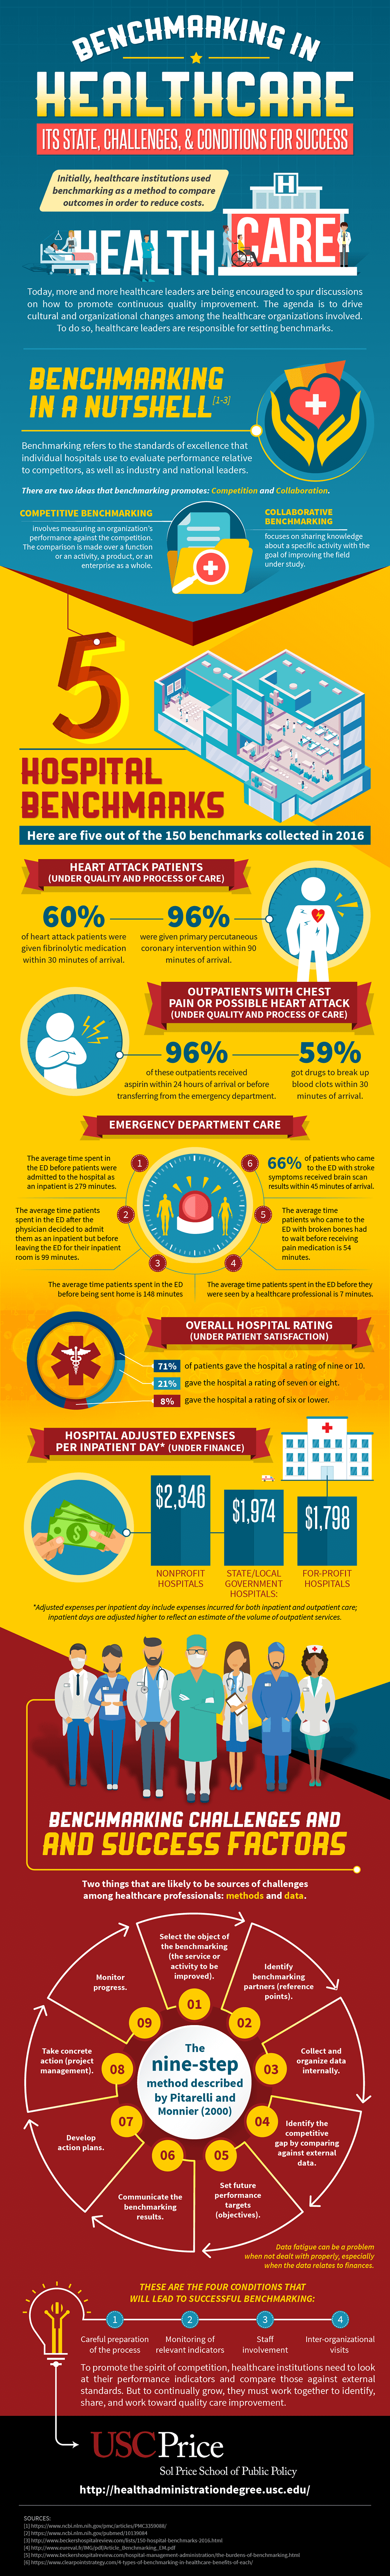 An infographic about healthcare quality improvement through benchmarking by USC Sol Price School of Public Policy